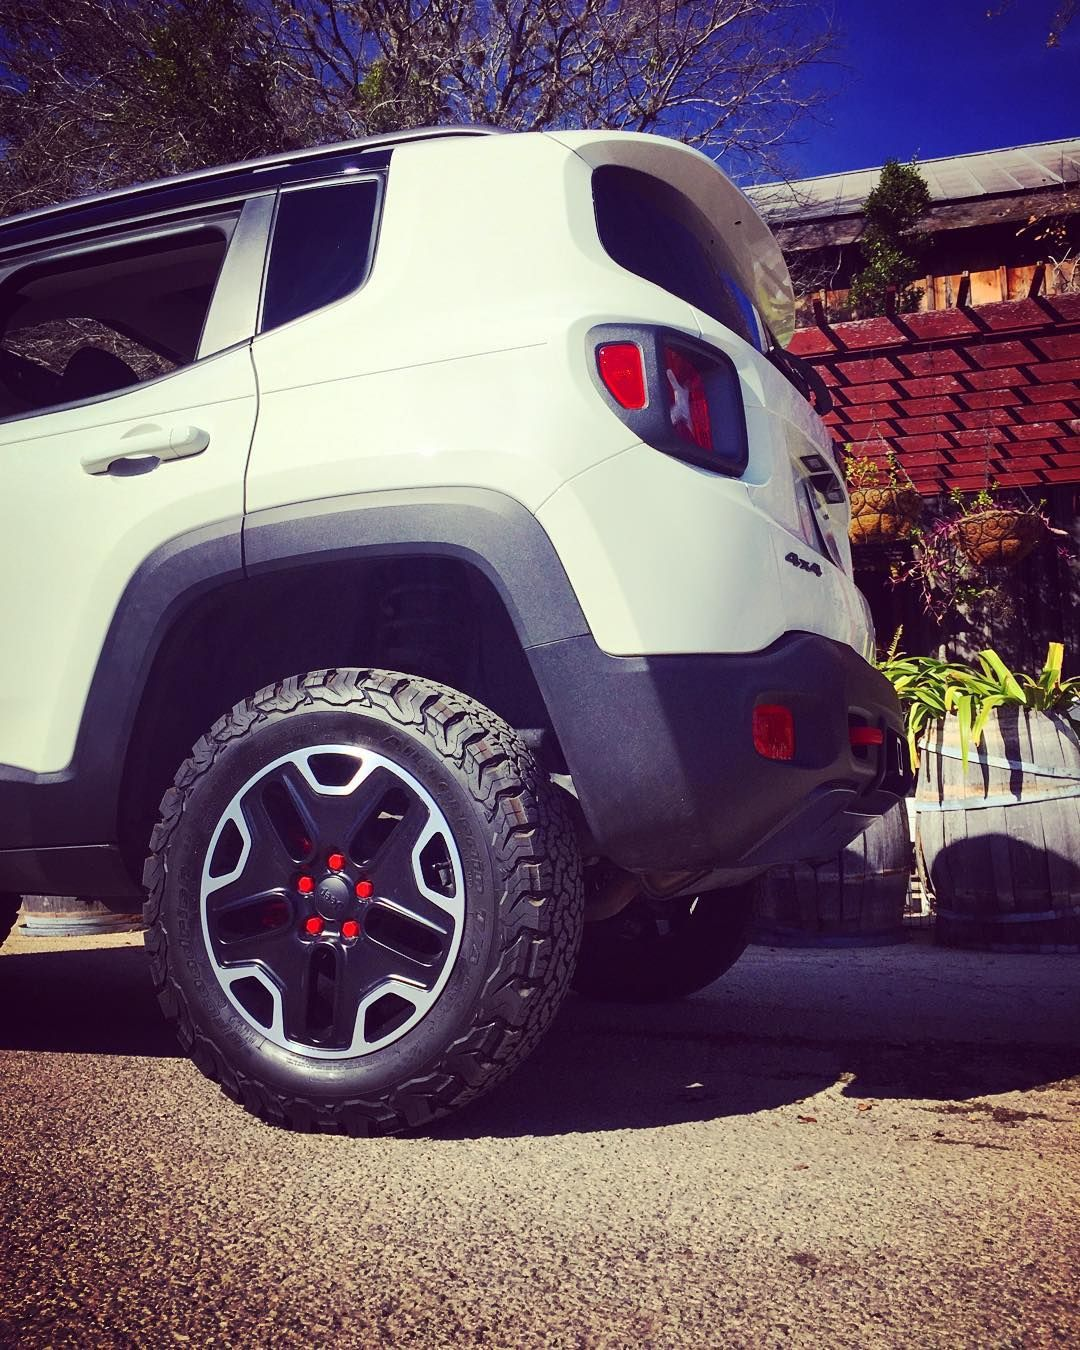 Jeep Renegade Owners Of Texas On Instagram Daystarproducts 1 5